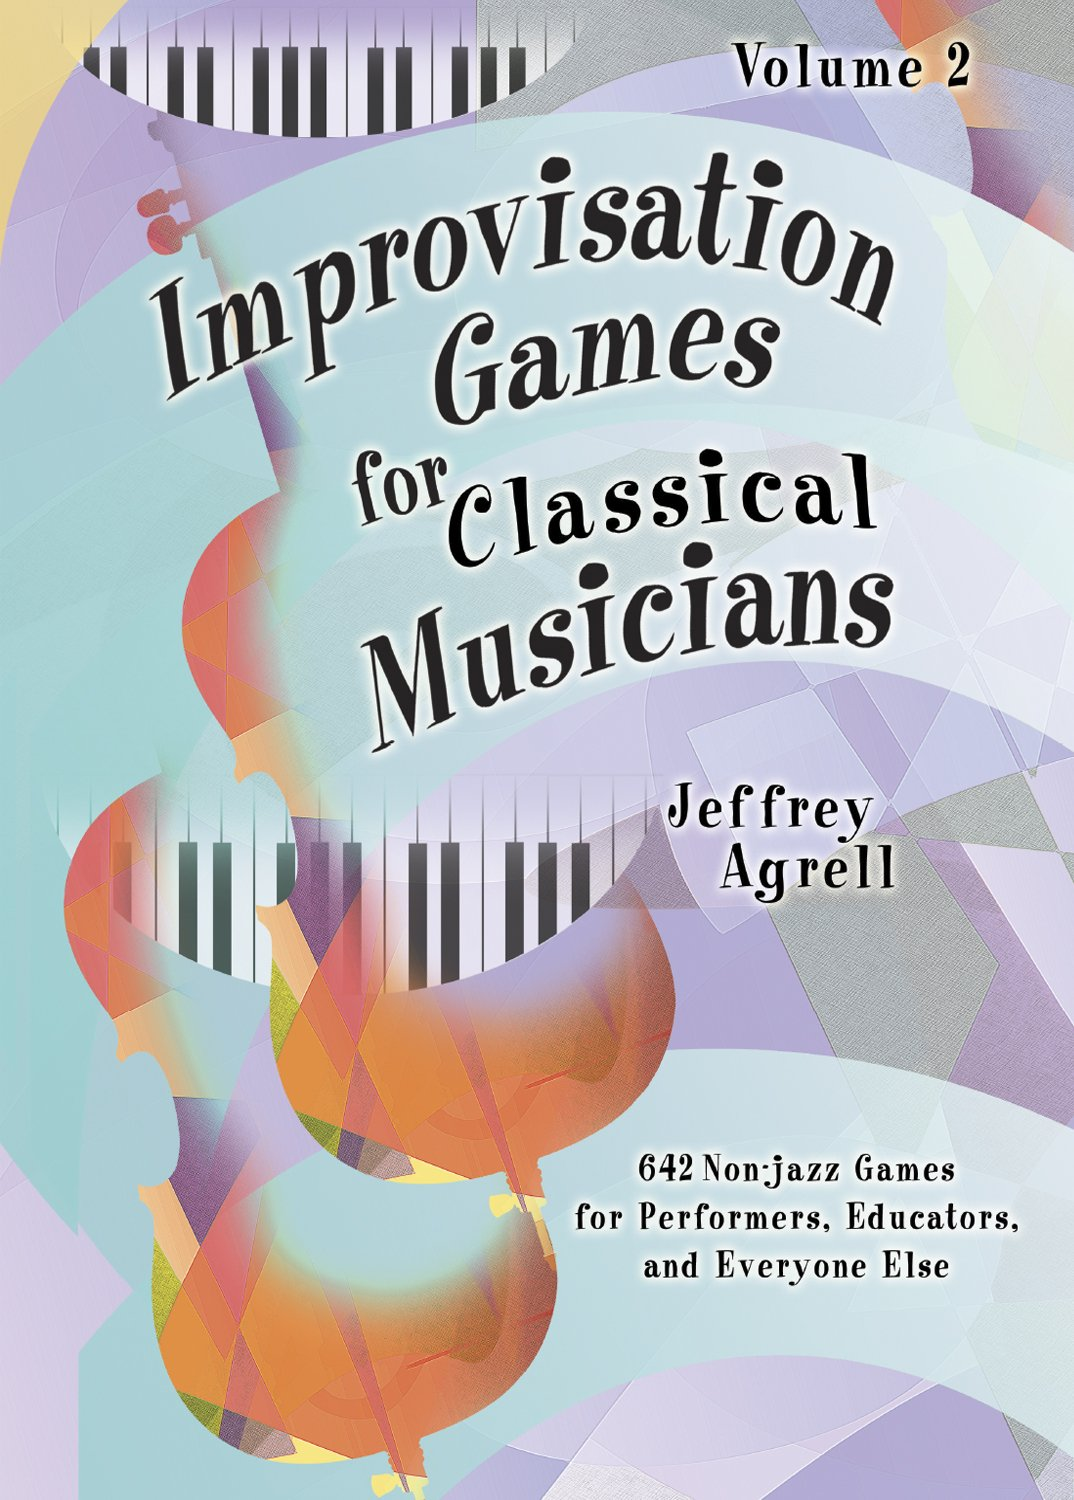 Improvisation Games for Classical Musicians - Volume 2 / 642 More Creative Musical Games for Students, Teachers, and Performers pdf